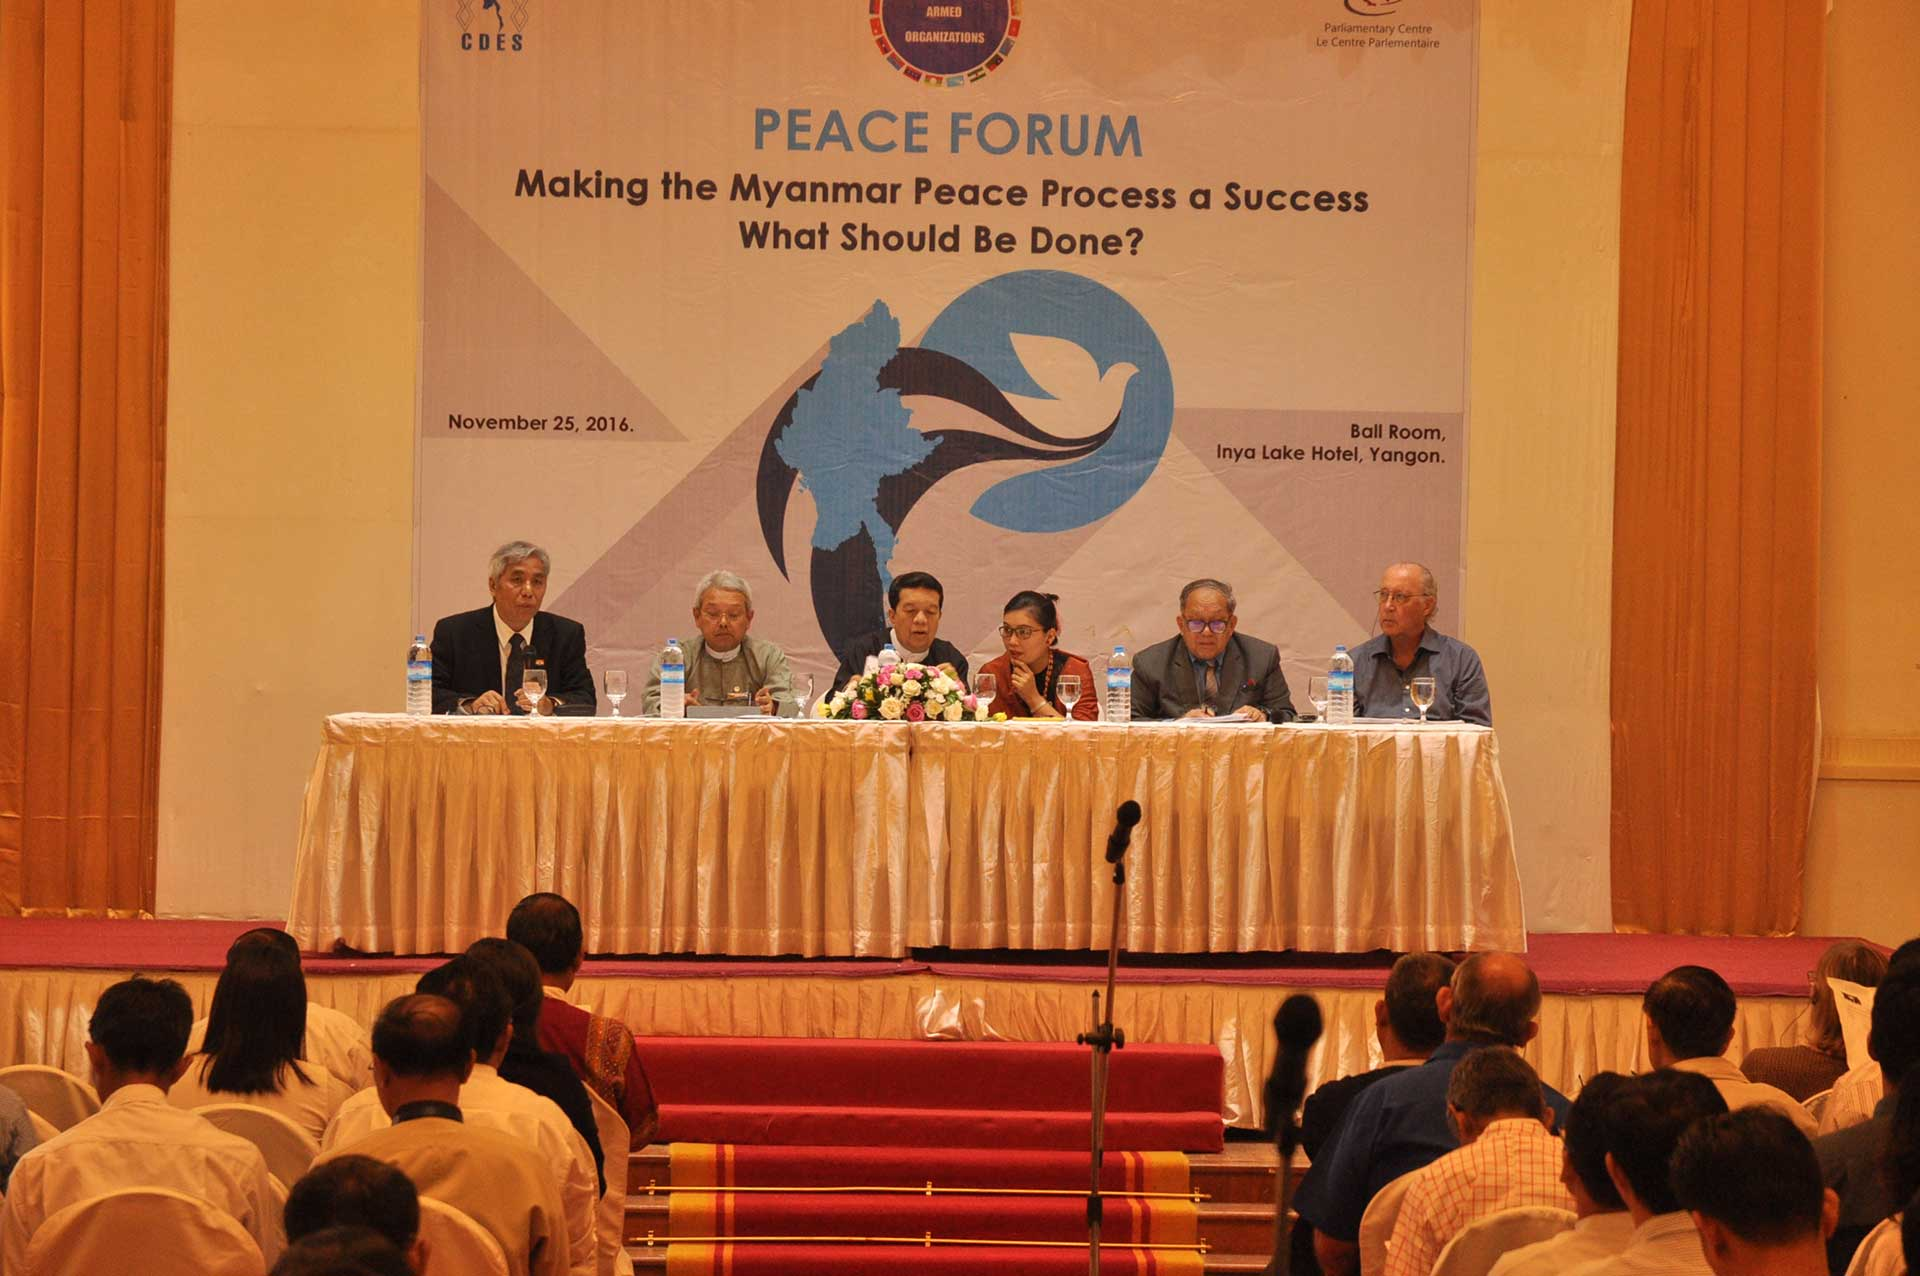 International, National Peace figures Honor CDES Peace Forum.